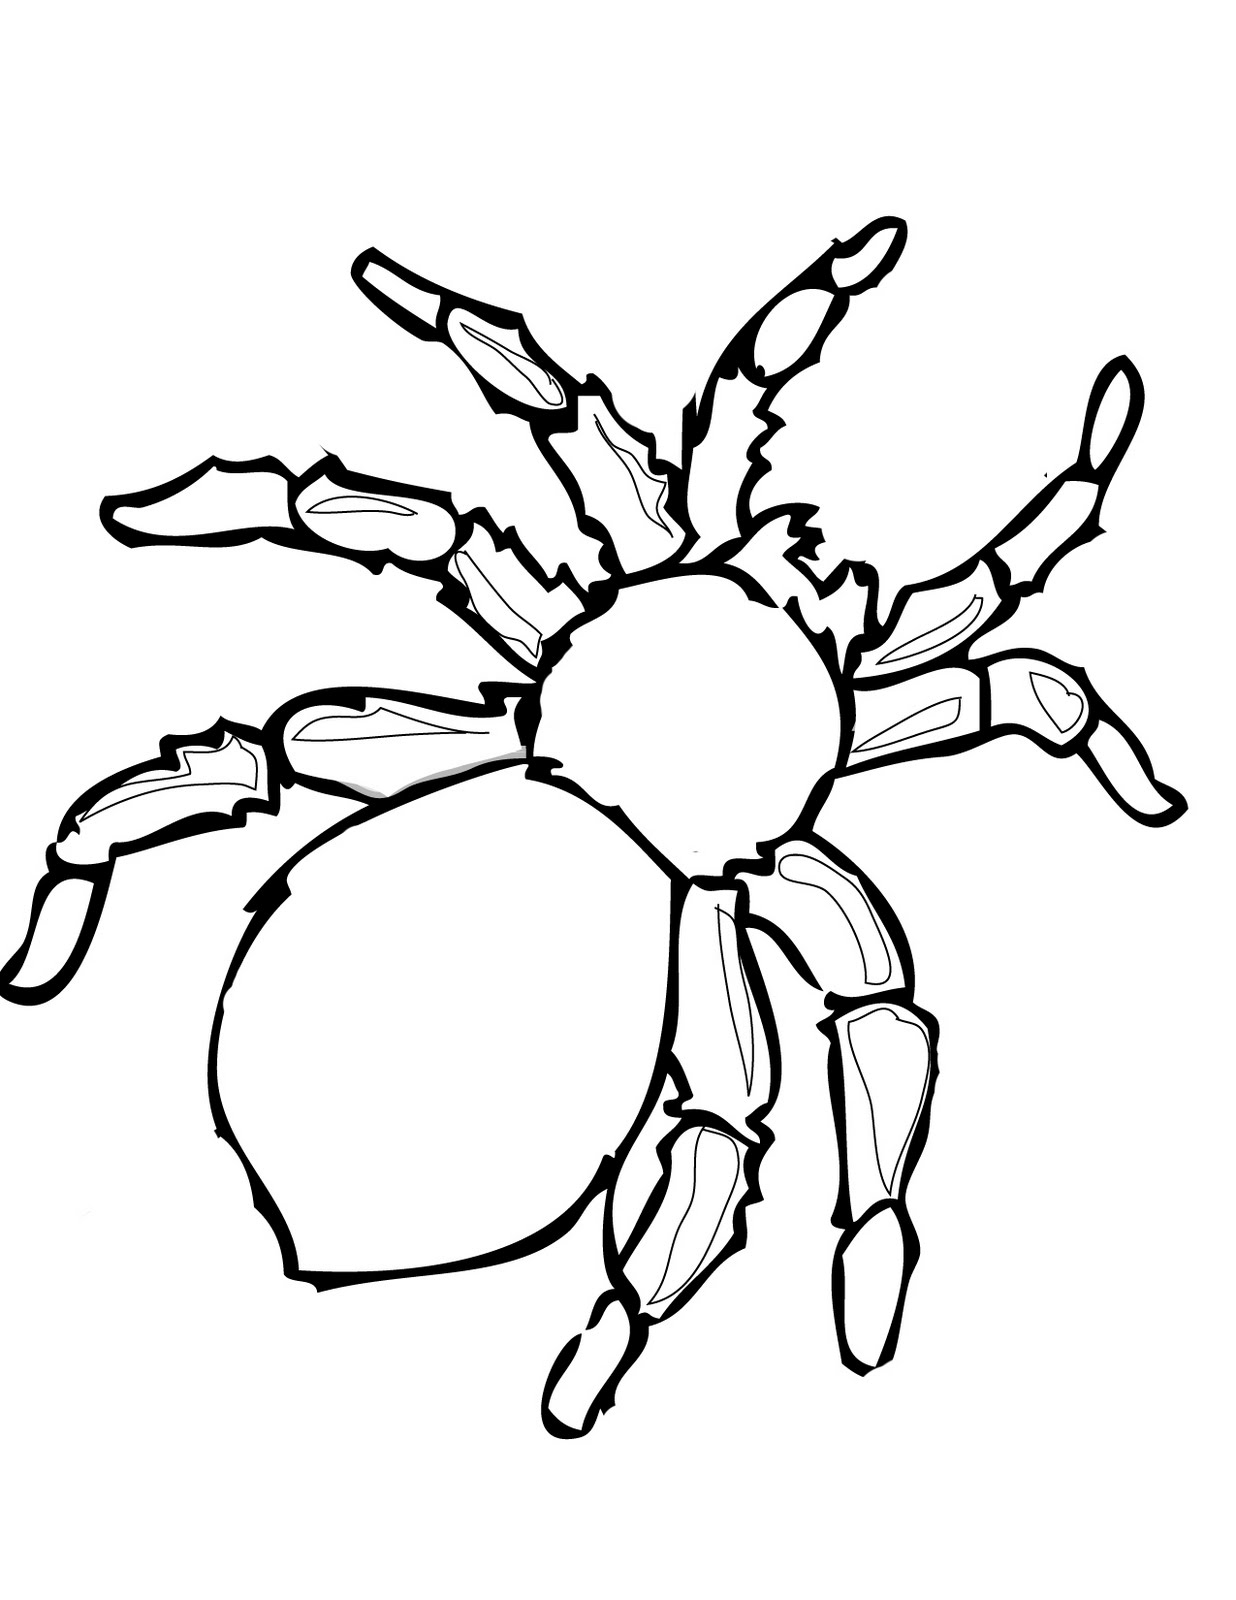 1236x1600 Free Printable Spider Coloring Pages For Kids With Page Theotix Me